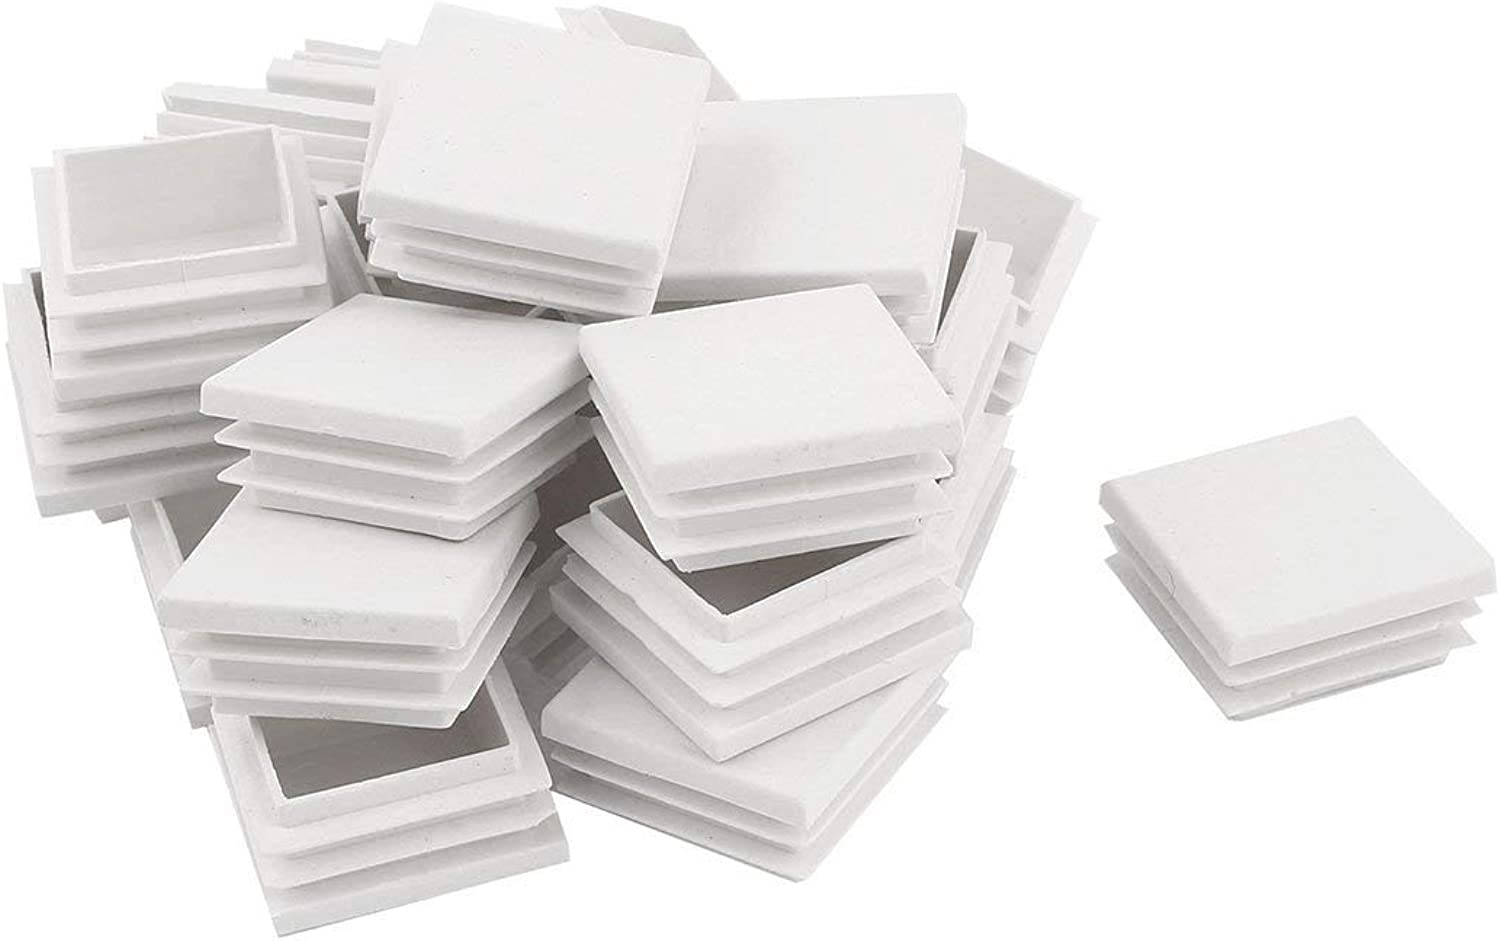 40mm x 40mm Square Plastic Table Foot Holder Predector White 24 Pcs